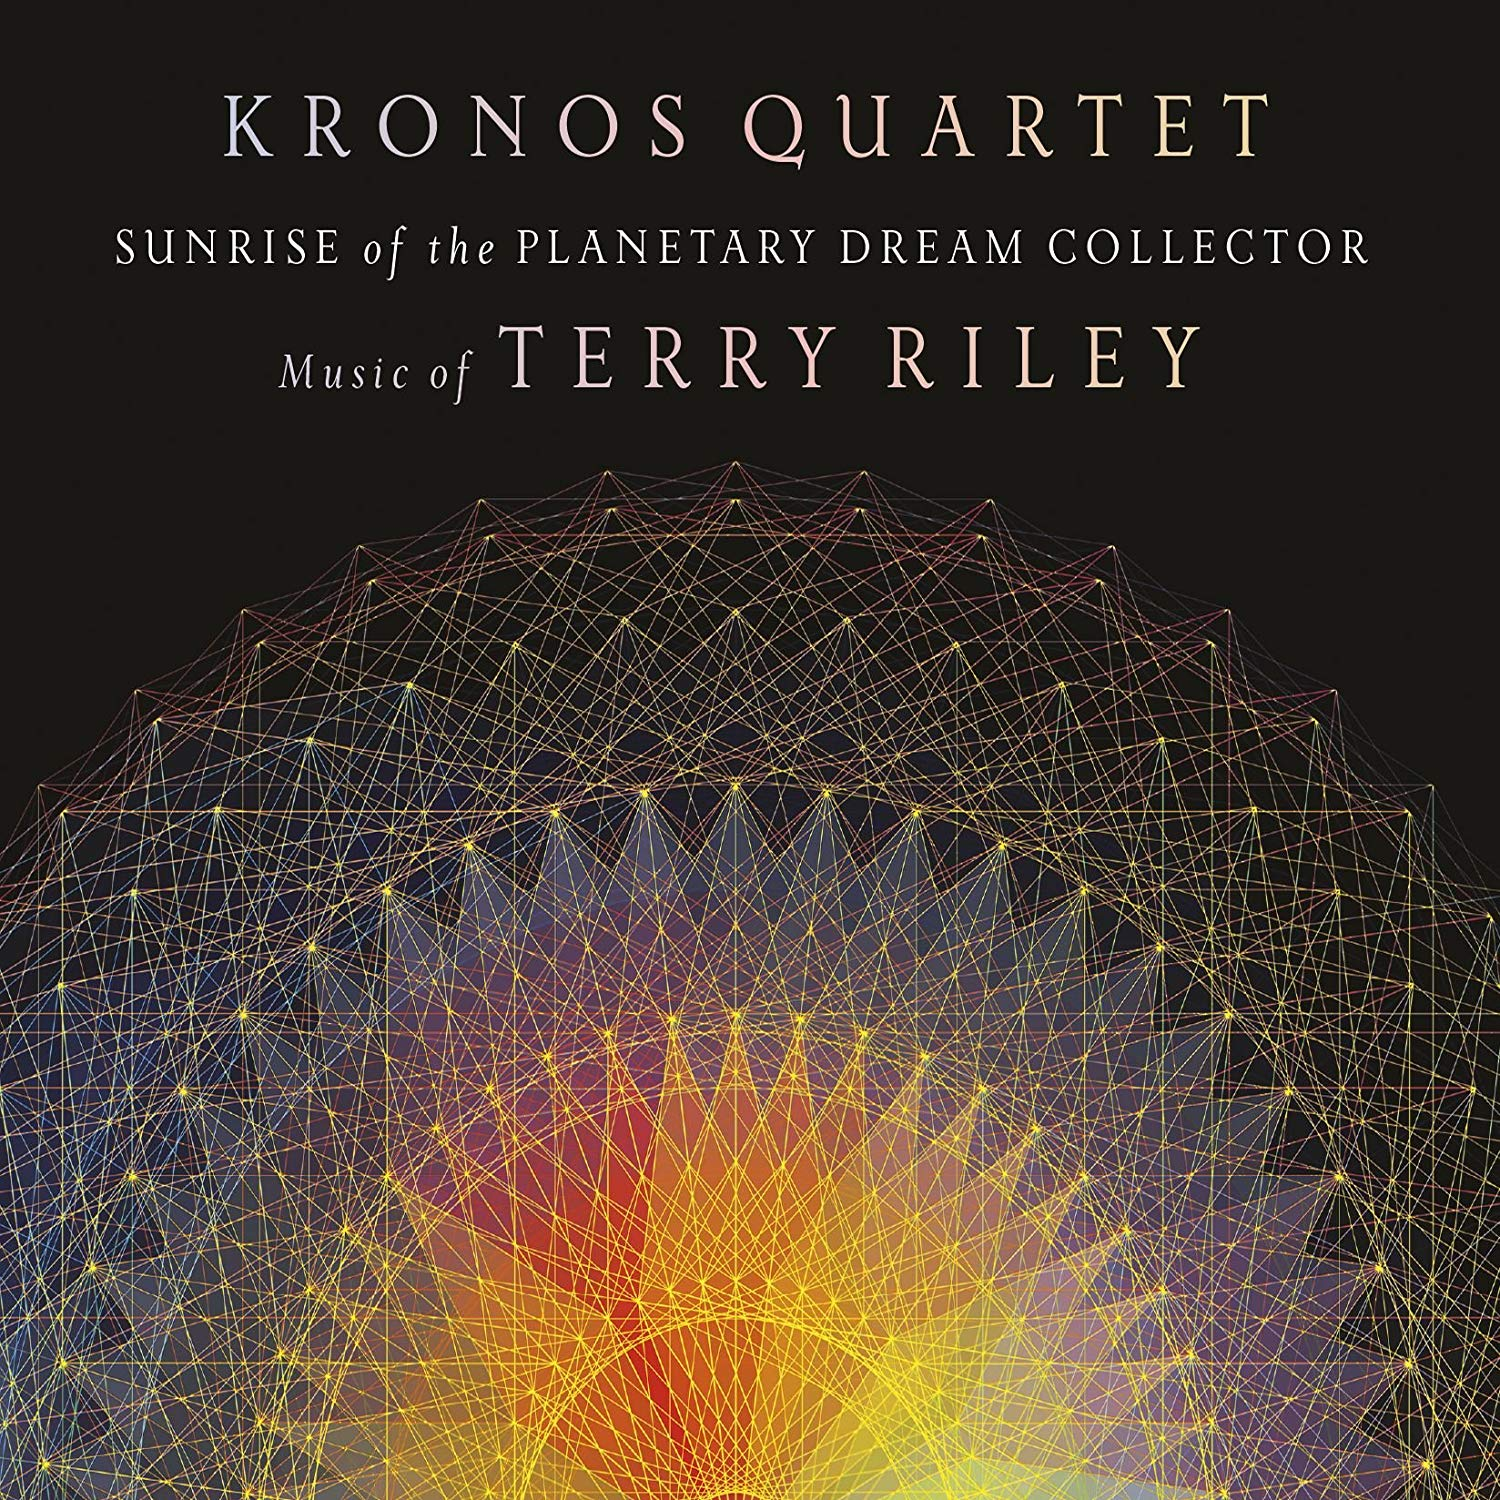 Sunrise of the Planetary Dream Collector: Music of Terry Riley